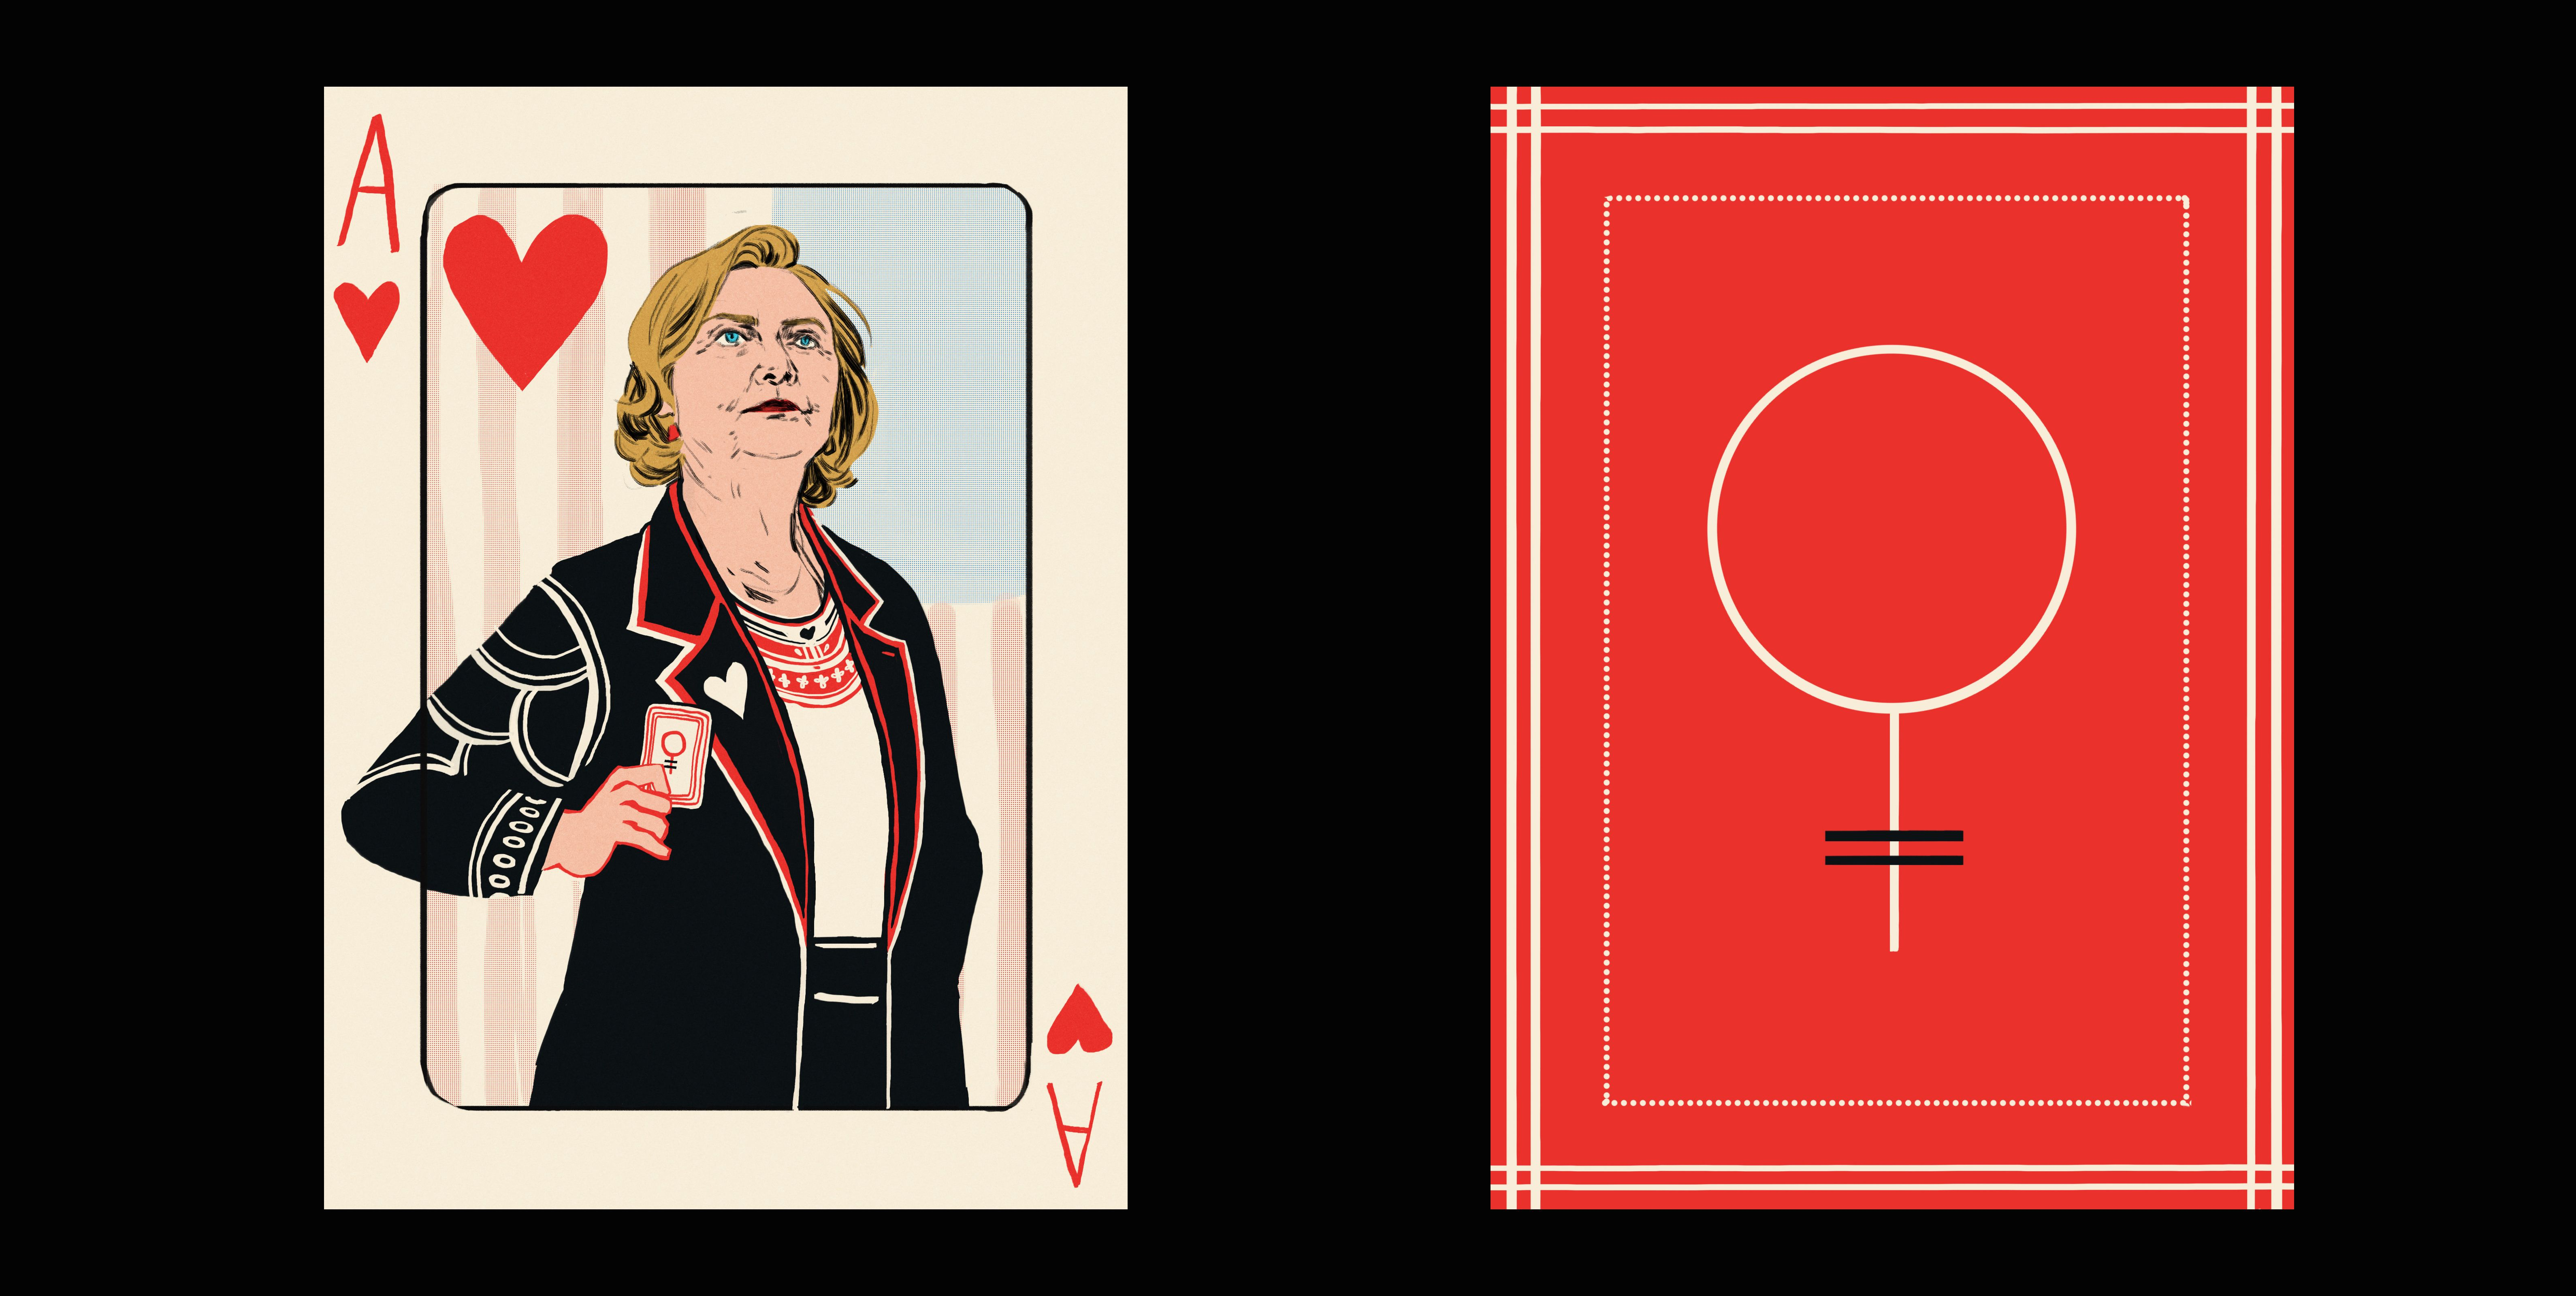 """Hillary Clinton is the """"Ace,"""" while the back of the cards feature the symbol for """"woman."""" The Woman Card[s]indeed."""